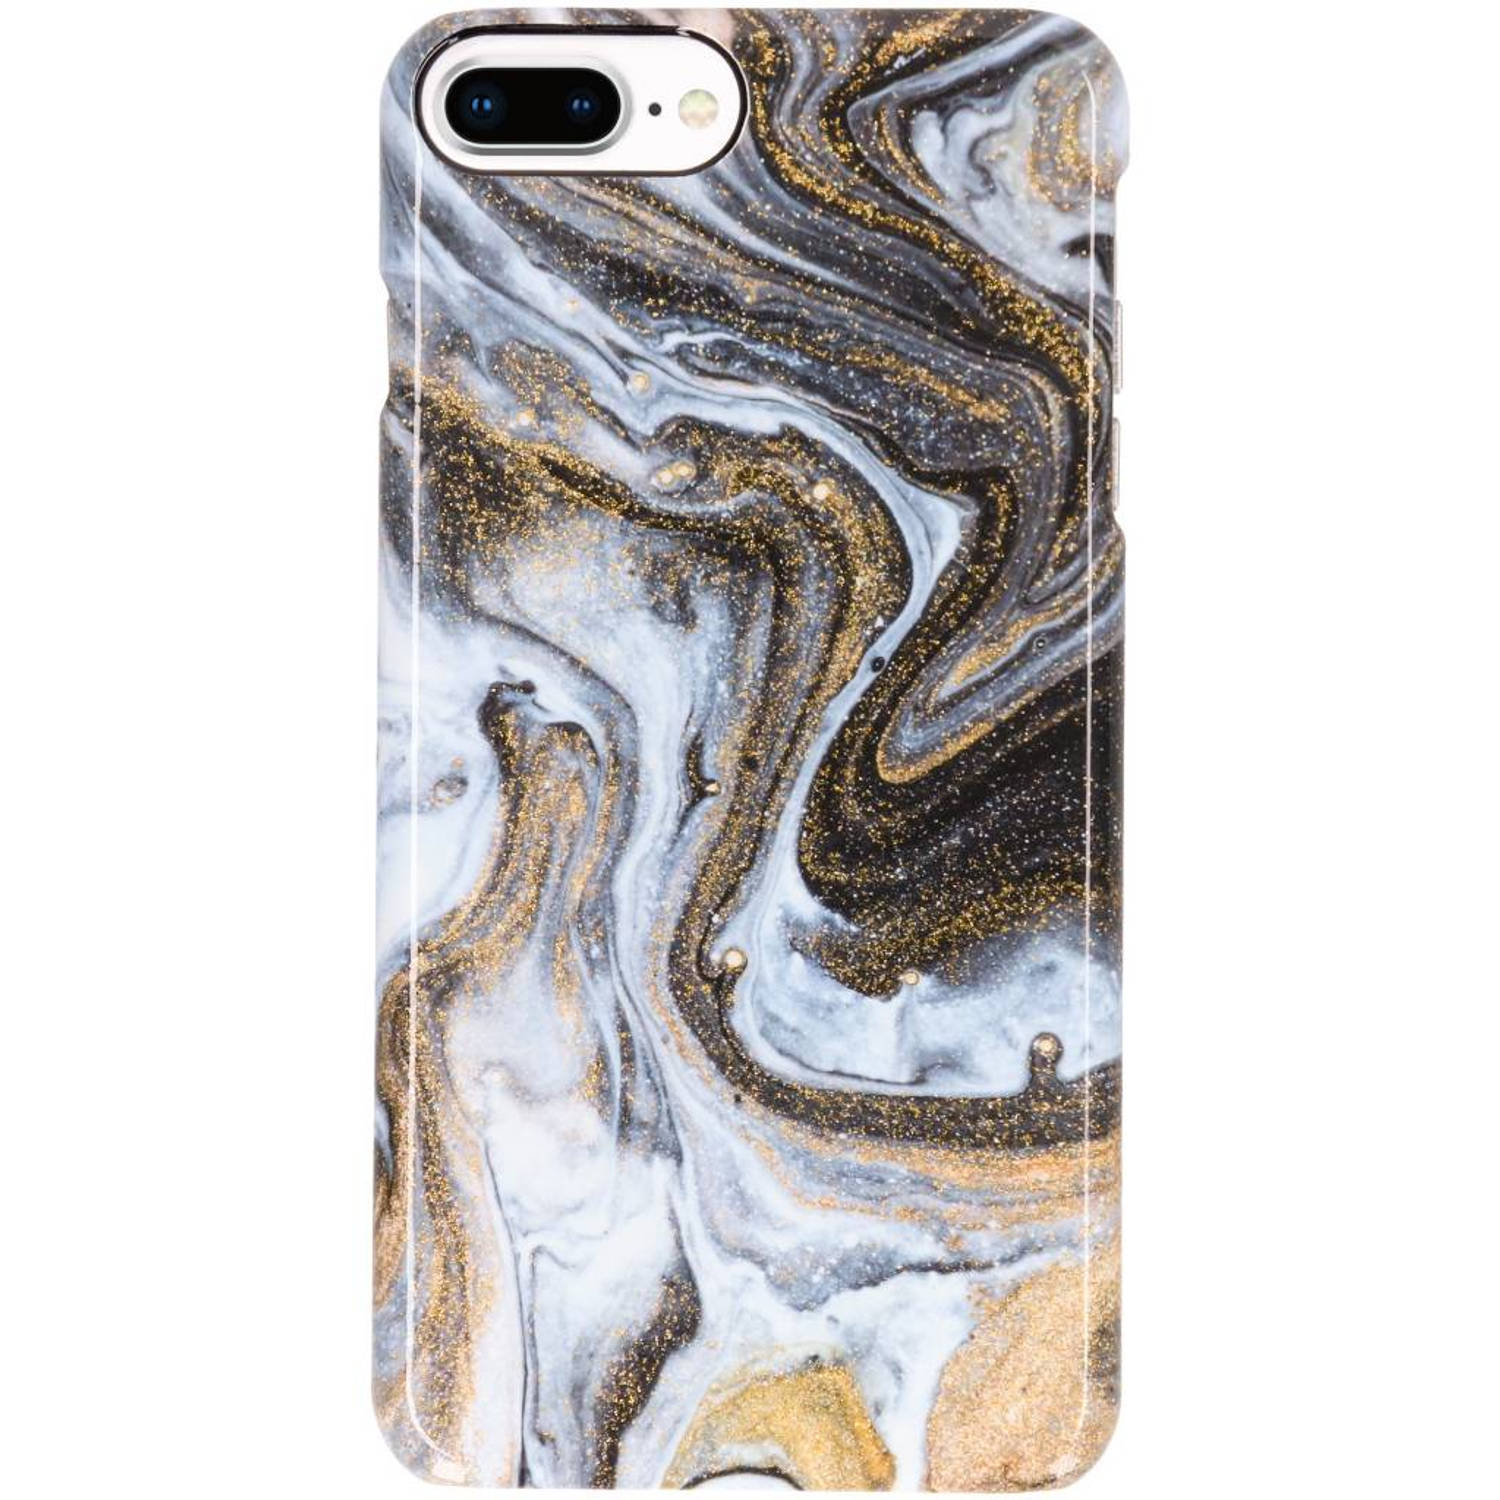 iPhone 8 Plus / 7 Plus / 6(s) Plus hoesje zwart - Lava Passion